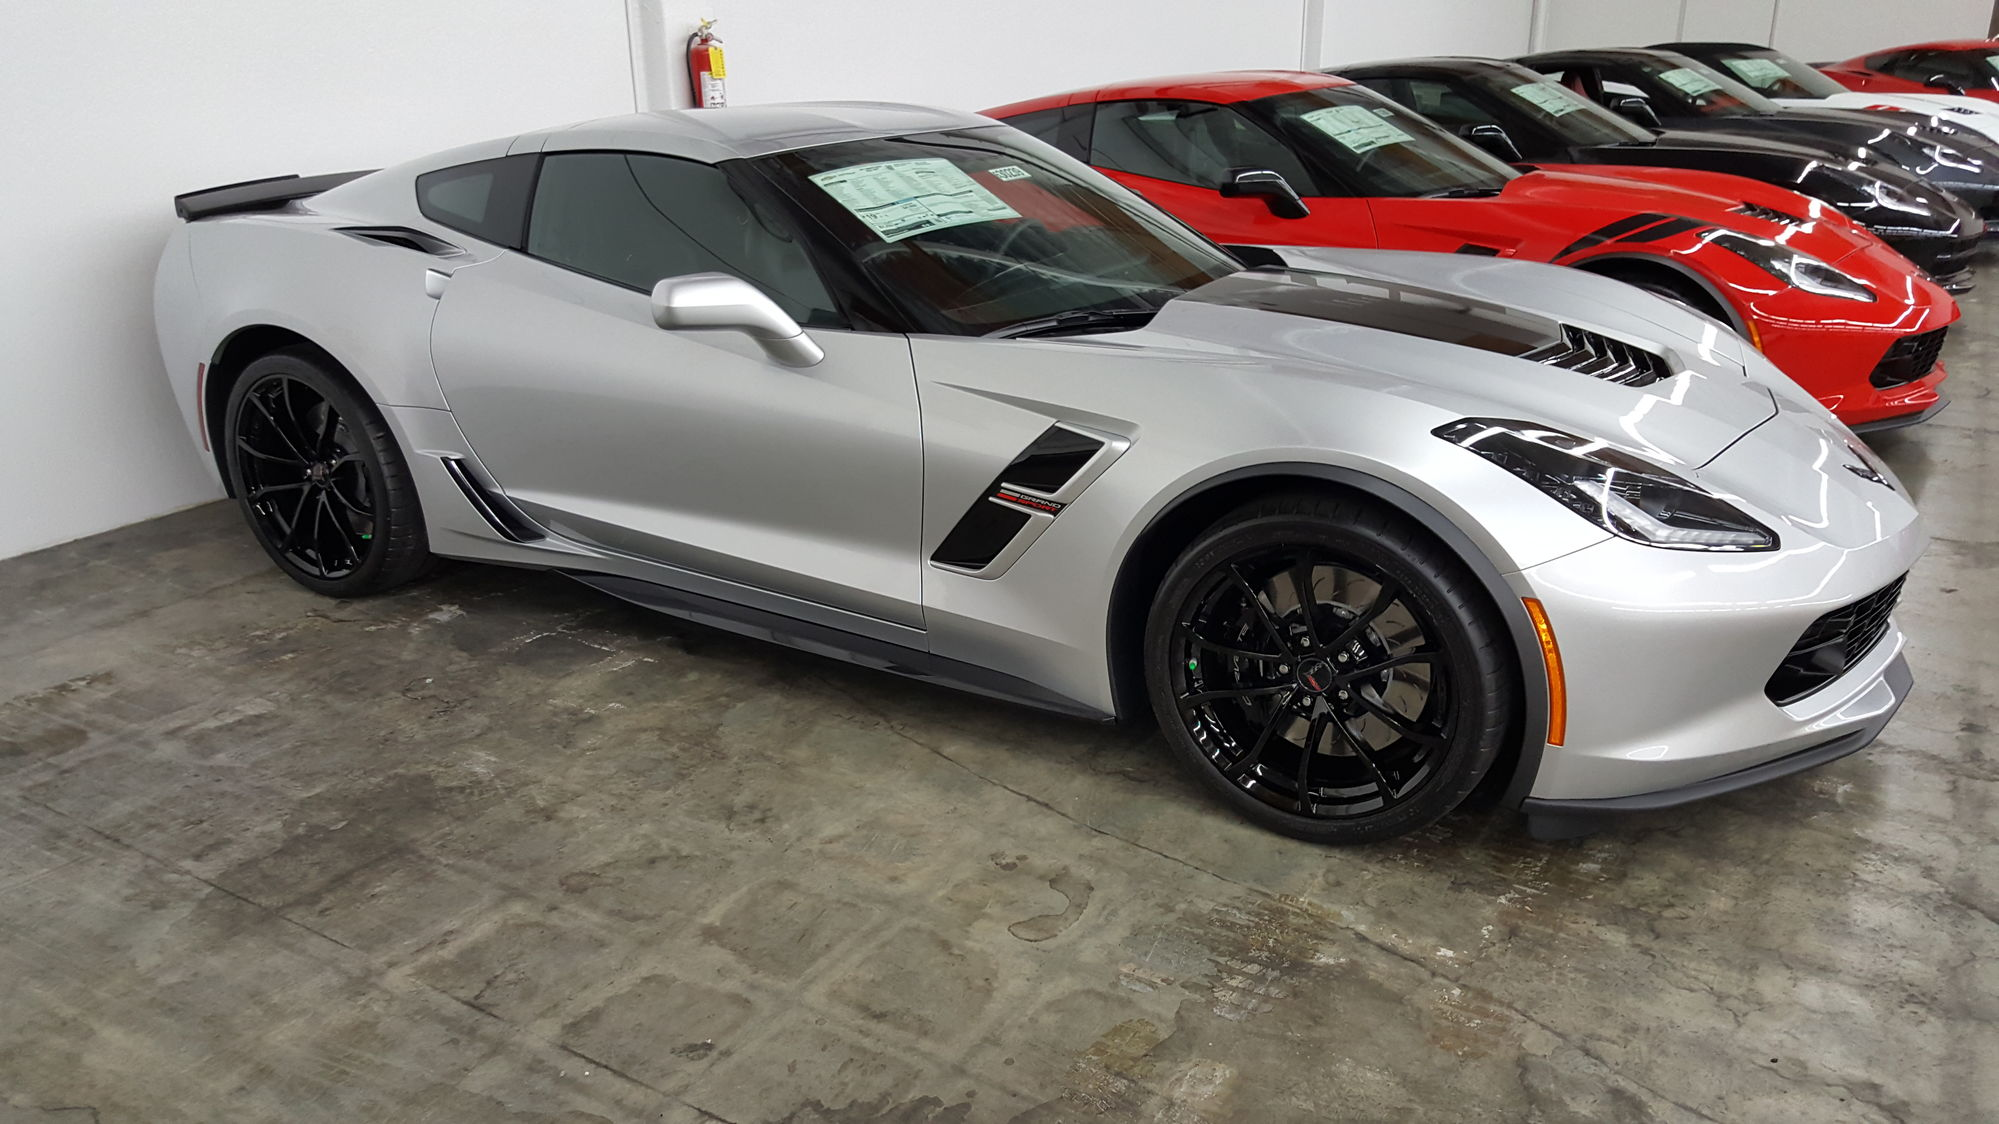 2017 Corvette Inventory At Boardwalk Chevrolet! Great Sale Prices! Ask ...